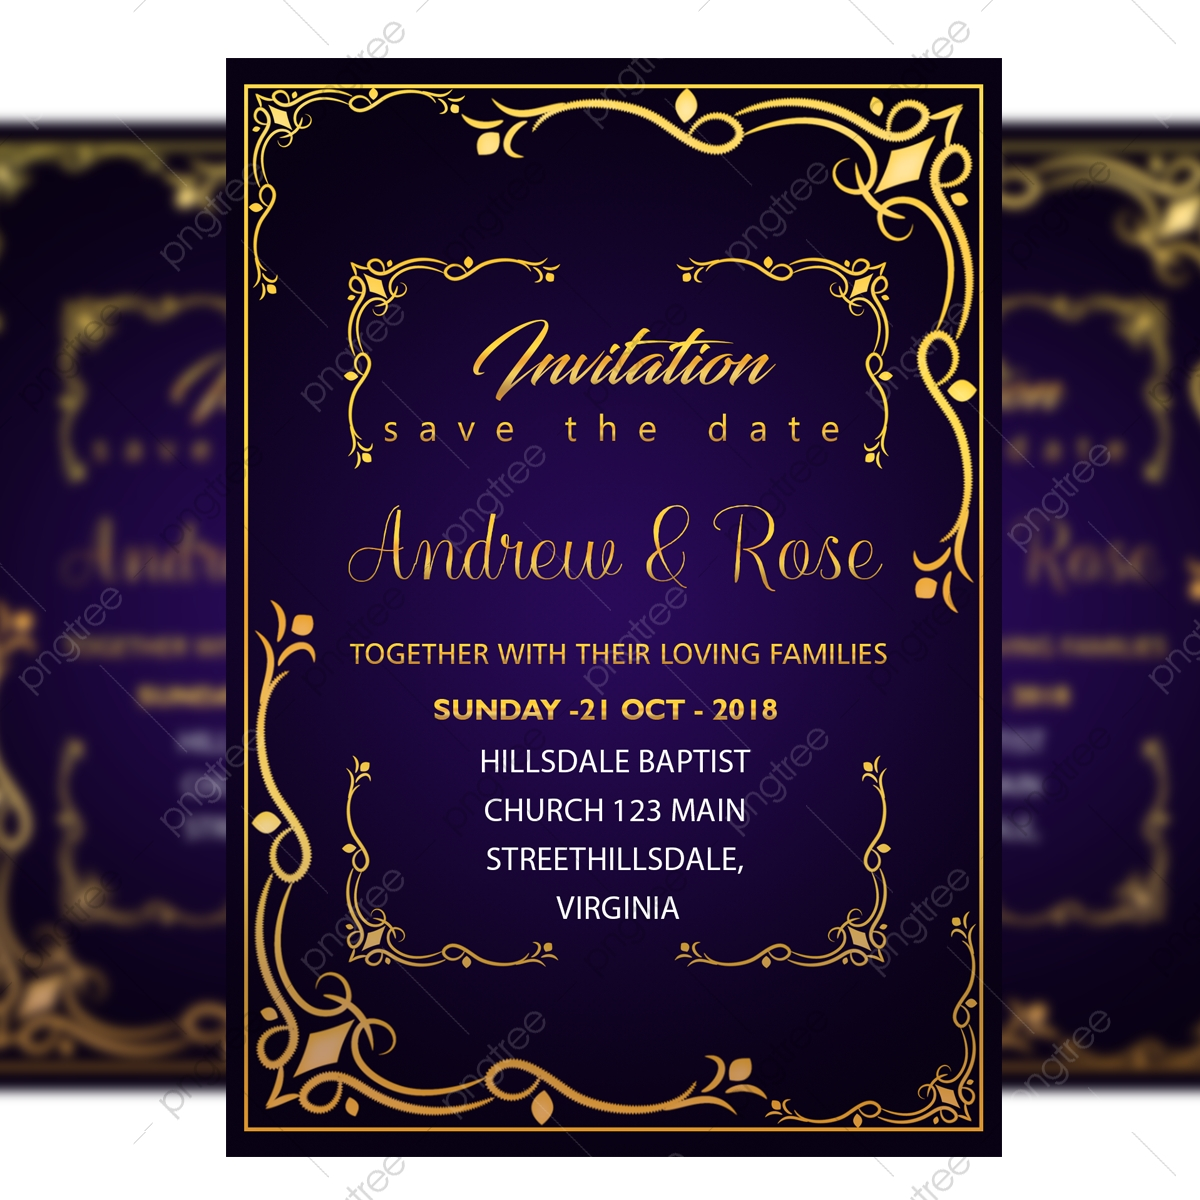 Blue Wedding Invitation Card Template Psd With Gold Frame And Border Template For Free Download On Pngtree